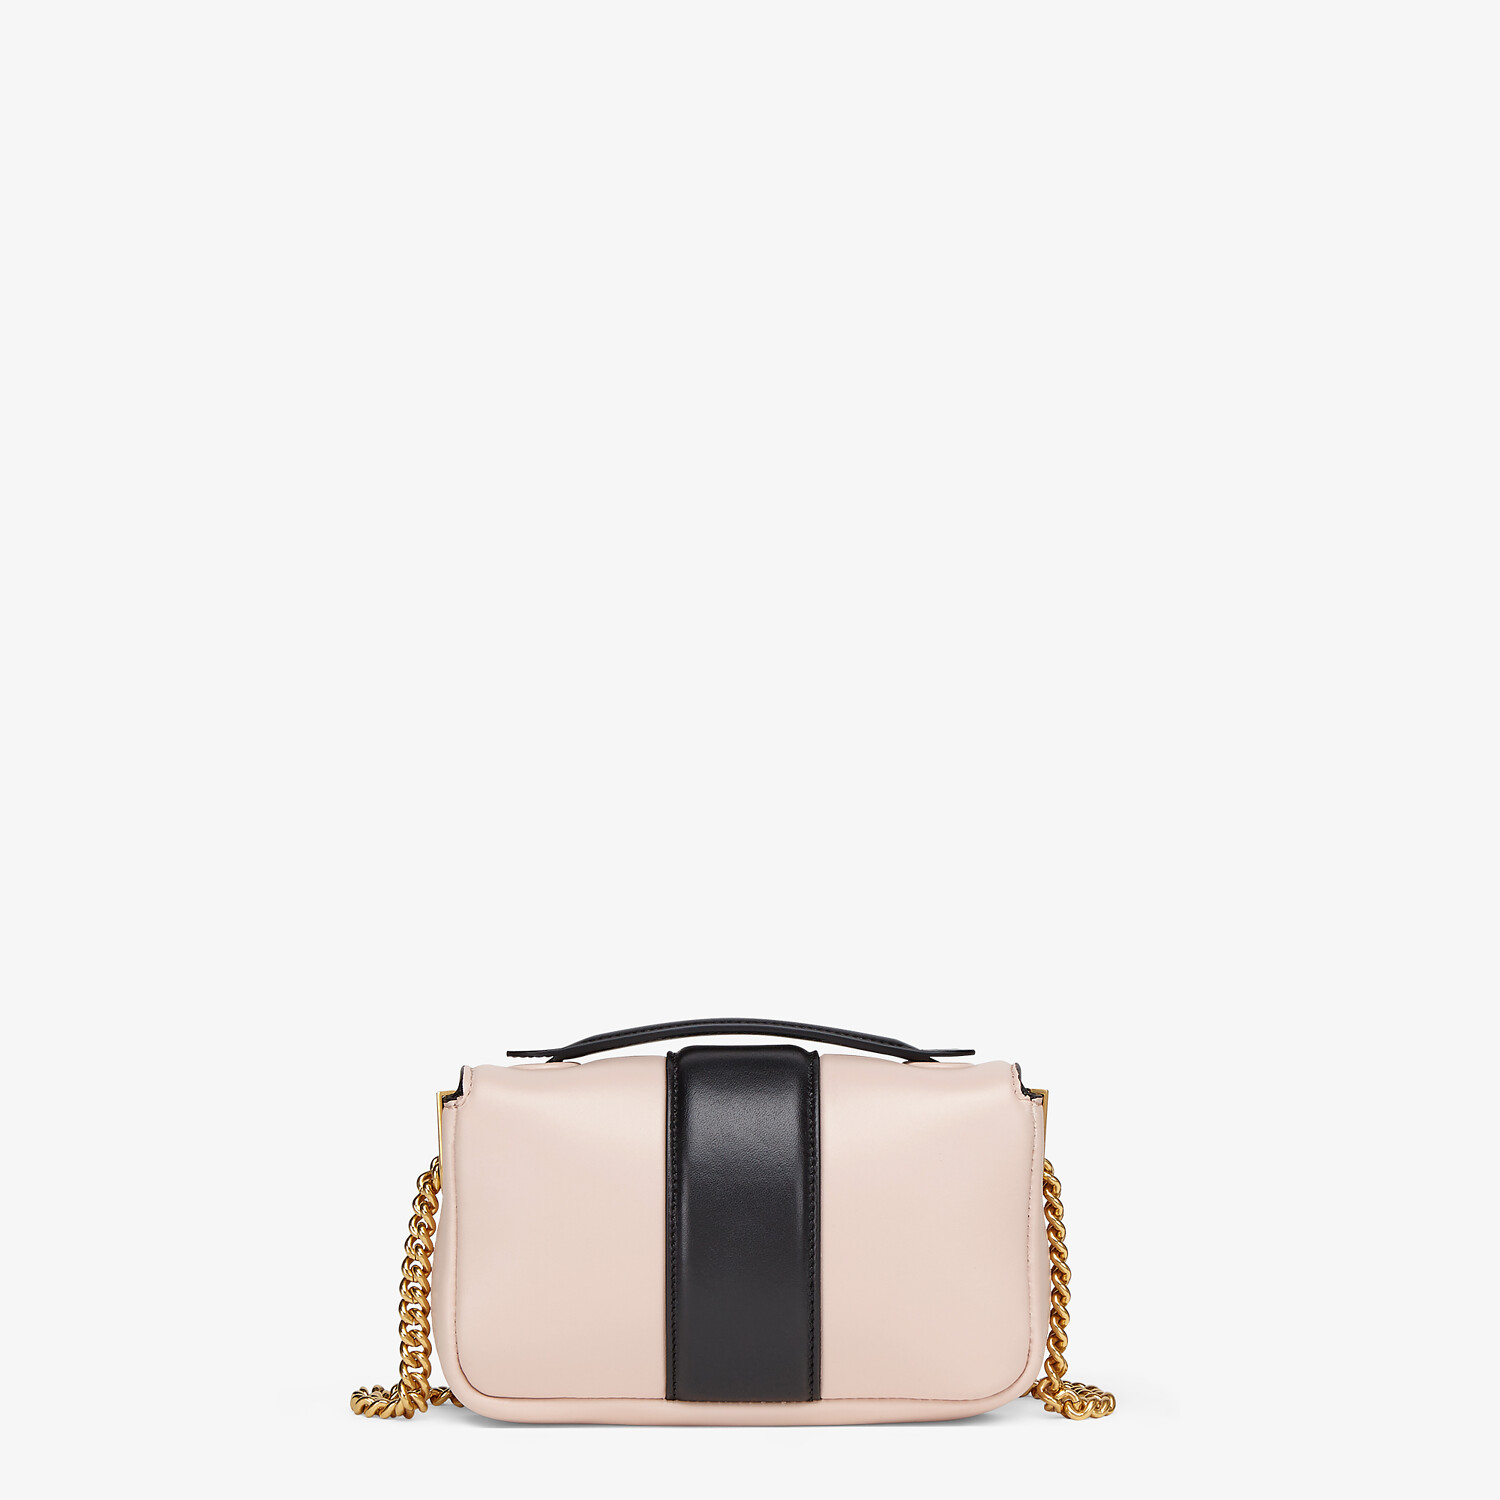 FENDI MINI BAGUETTE CHAIN - Pink and black nappa leather bag - view 3 detail